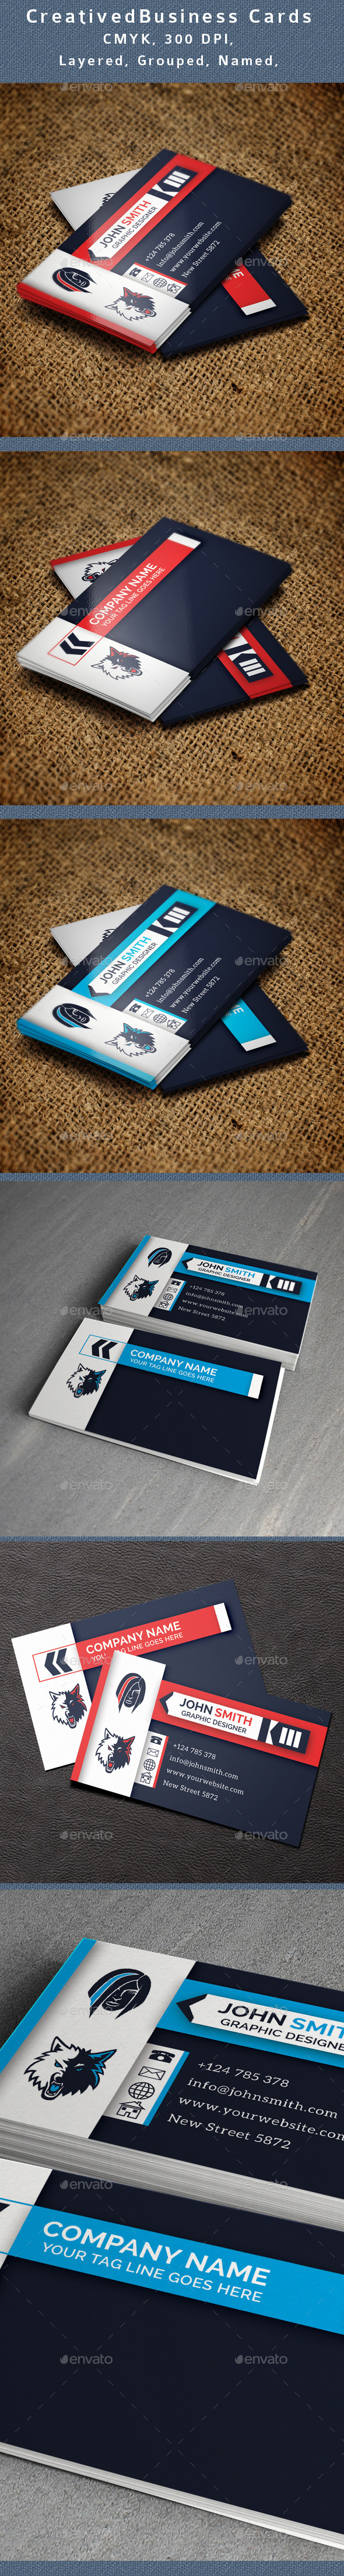 GraphicRiver Creative Business Card V3 11273940